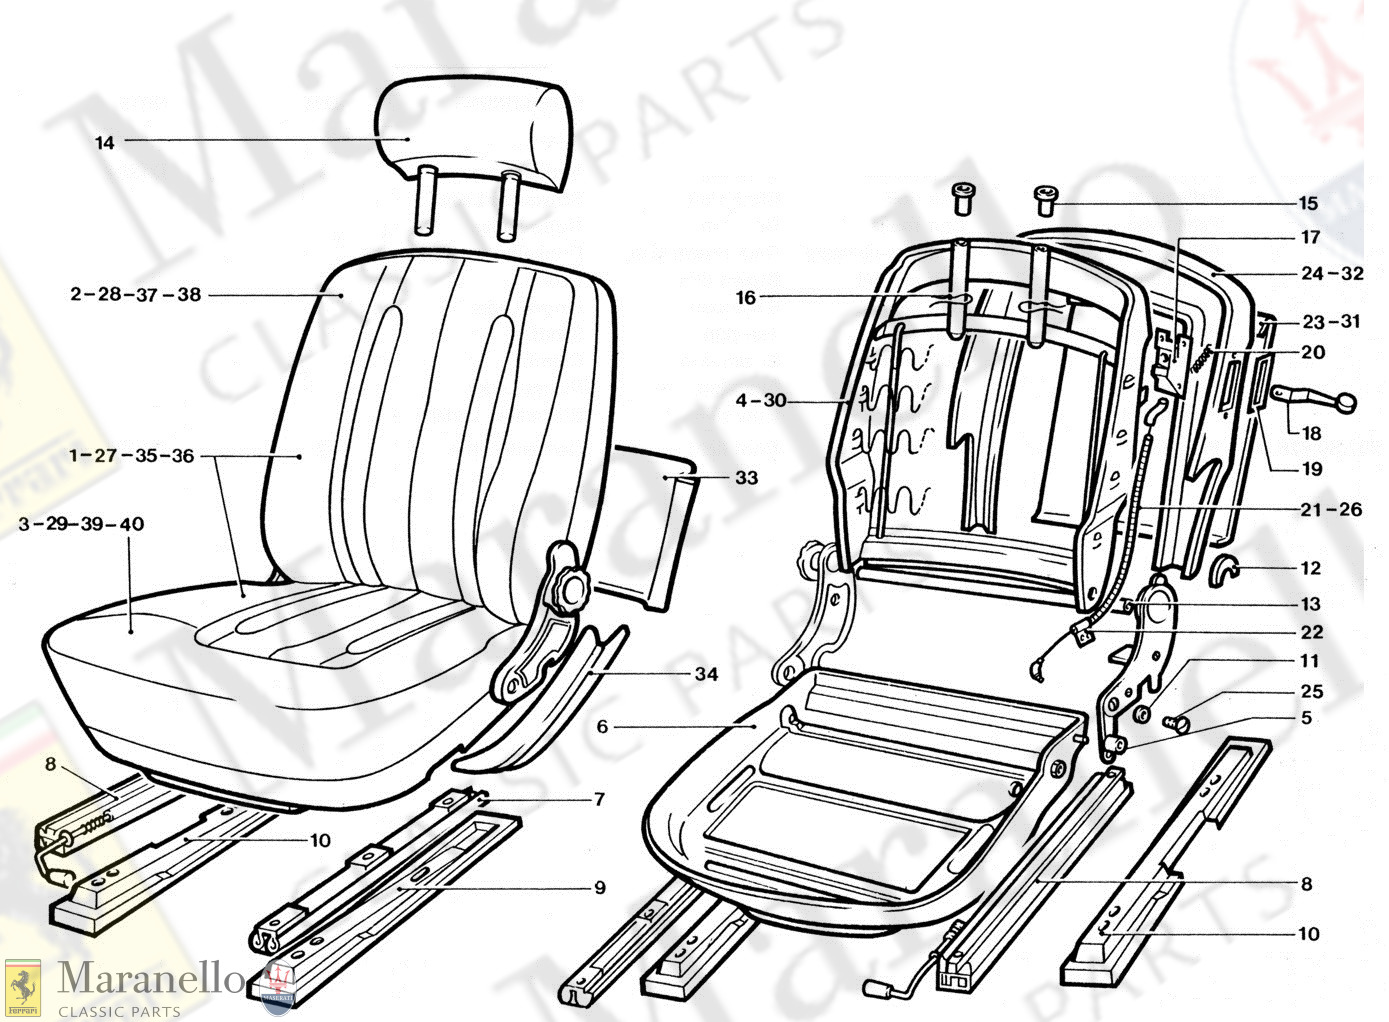 219 - Front Seat Components